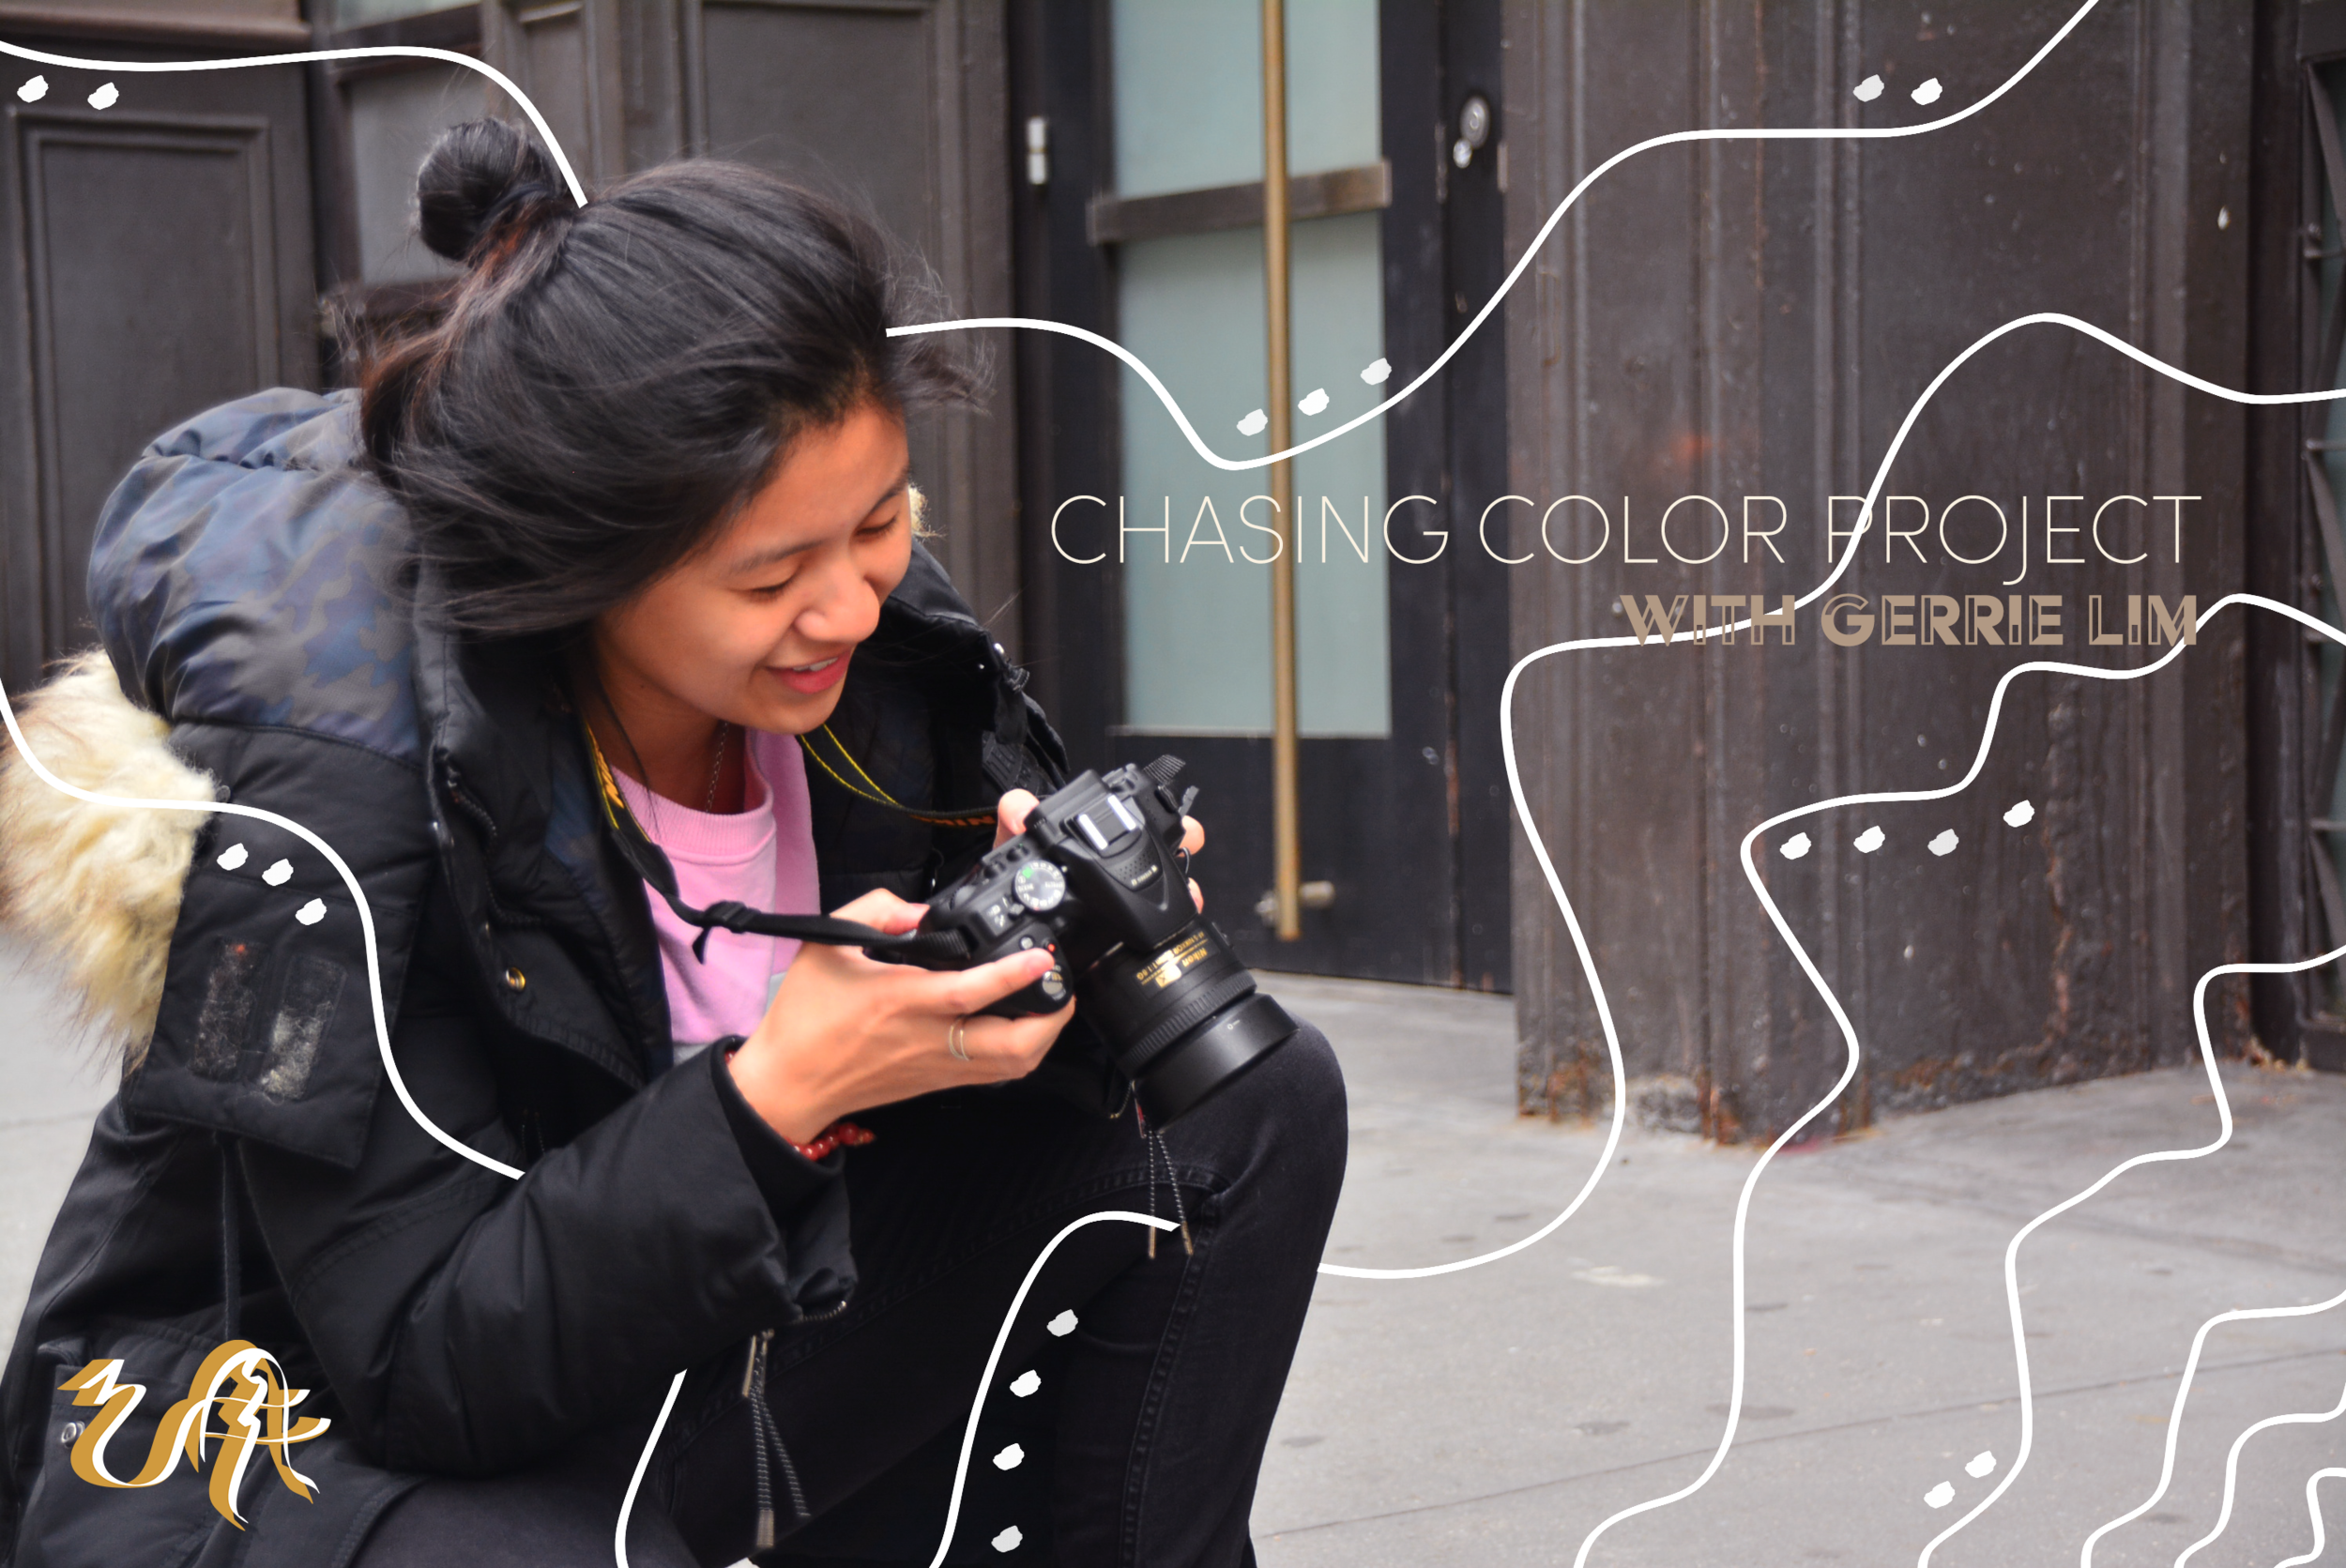 The Chasing Colors Project - AKIN collaborates with Gerrie Lim, the photographer and mastermind behind the Chasing Colors Project. Gerrie hopes to transcend the P.O.C. community by using people of color as their primary subjects in their storytelling.